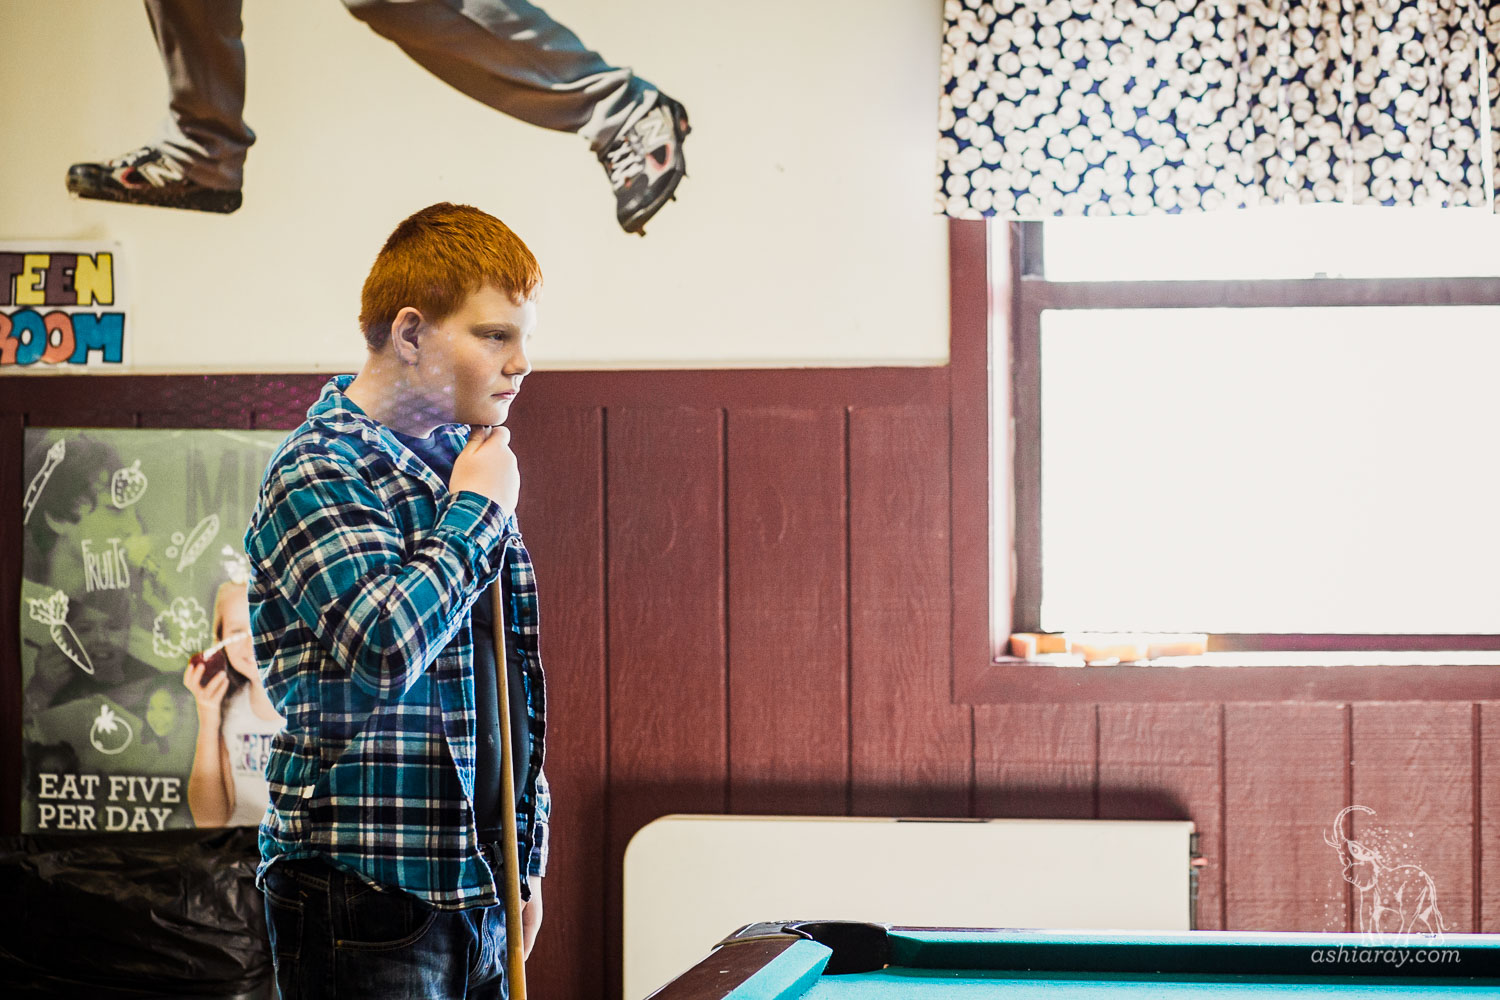 13-year-old boy in blue plaid shirt waiting his turn to play pool